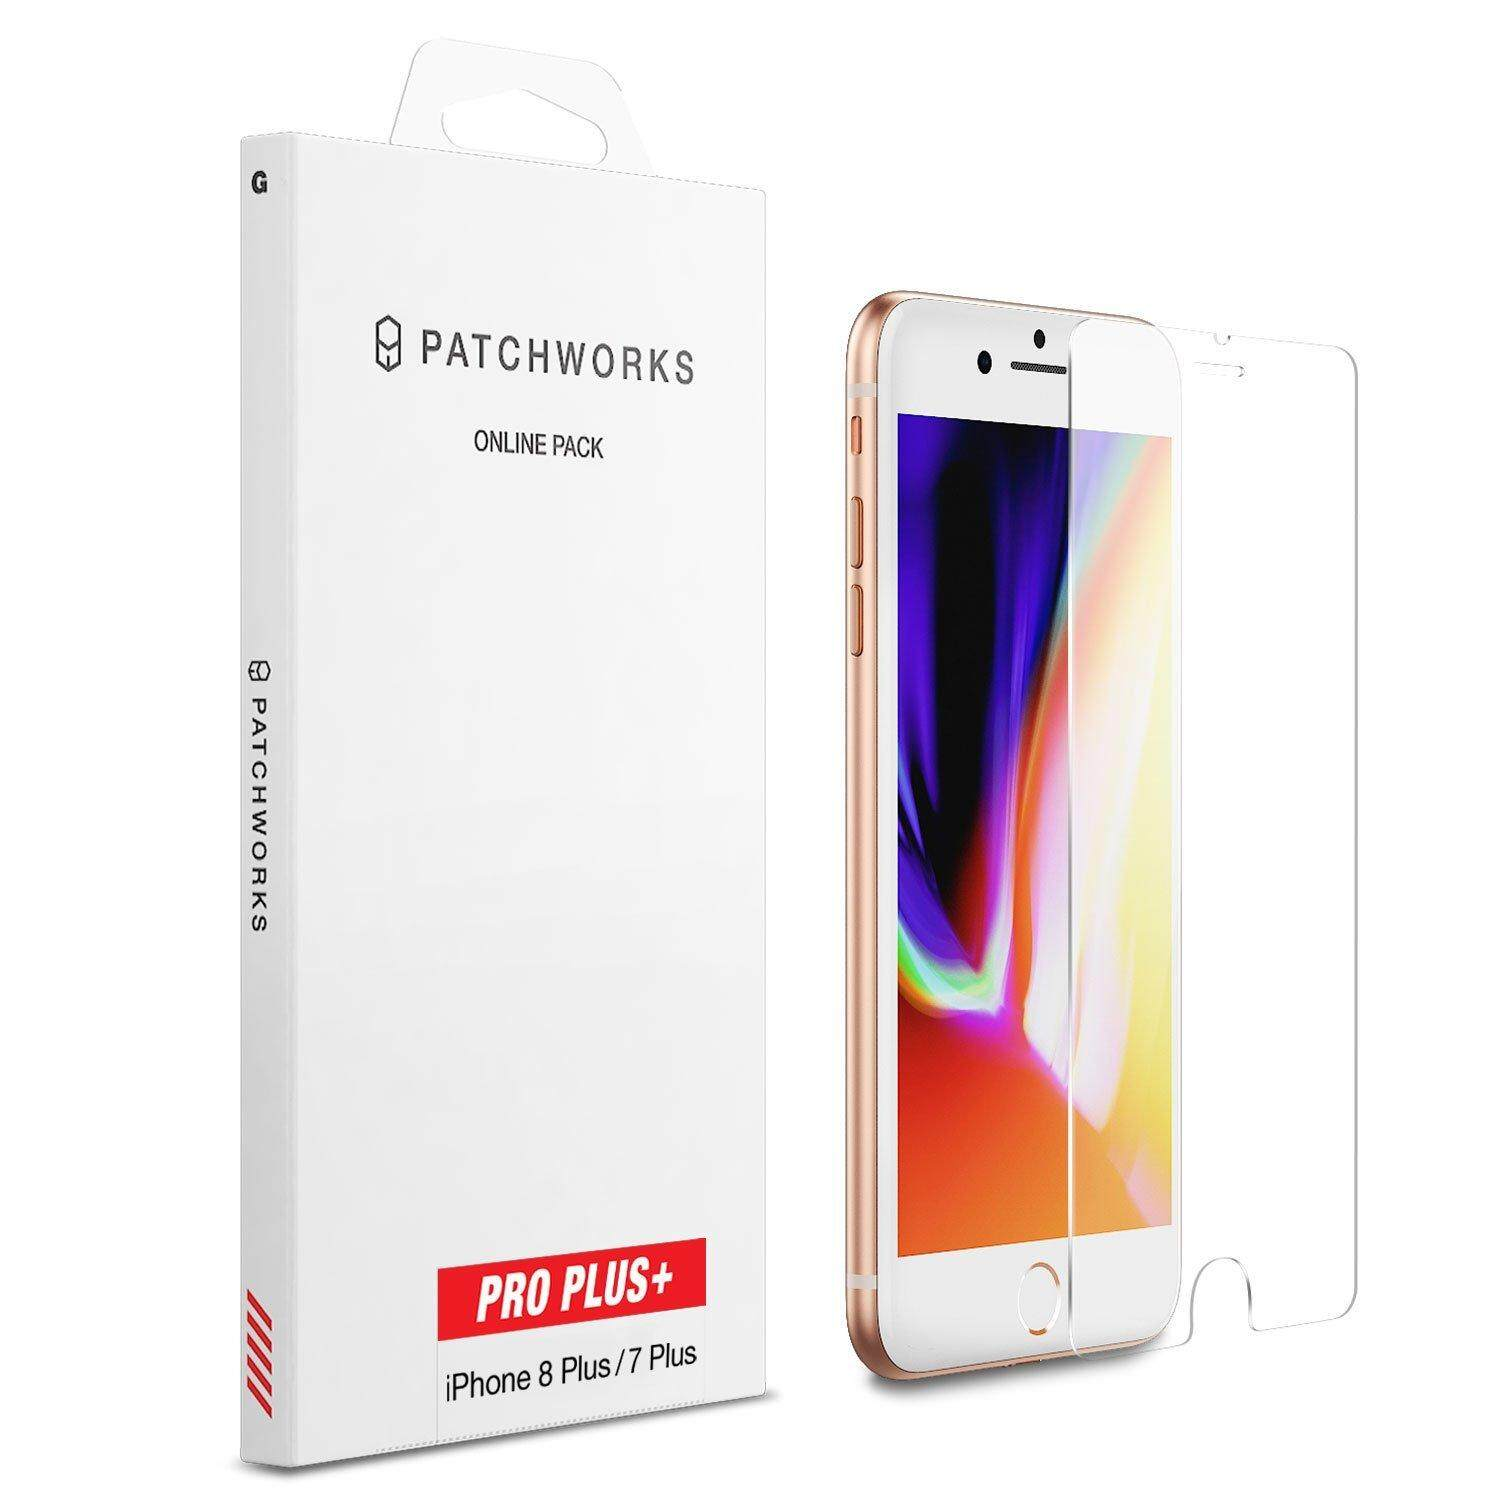 Suit for iPhone 8 Plus 7 Plus 6S 6 Plus Screen Protector, Patchworks ITG Pro Plus Made in Japan 9H 0.33mm Scratch Resistant Beveled Edge Oleophobic Coated Tempered Glass for iPhone 8 7 6S 6 Plus - intl